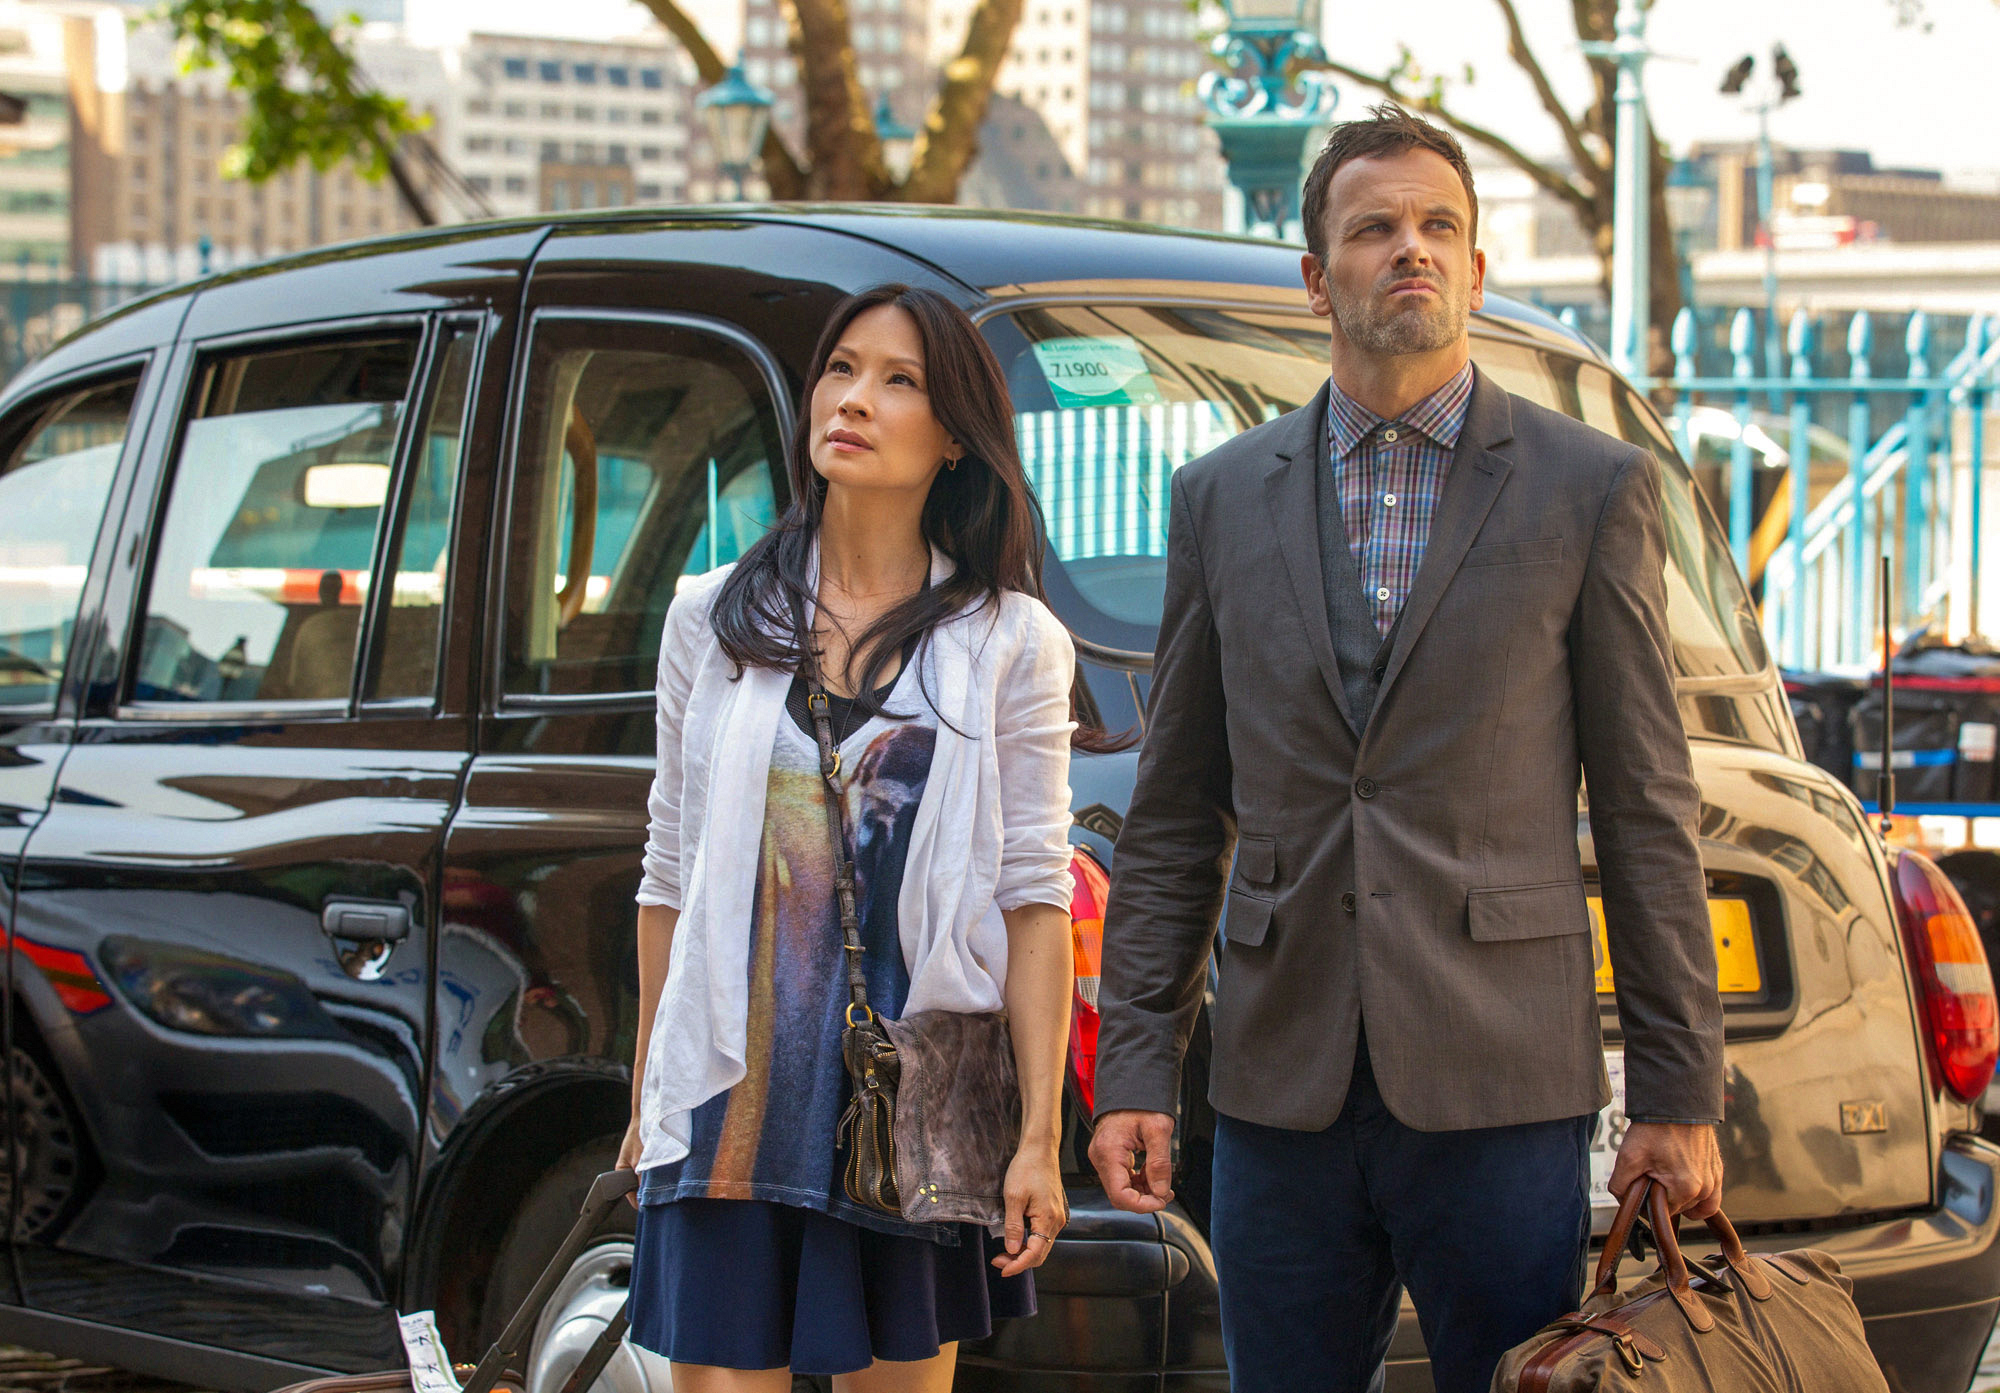 Jonny Lee Miller and Lucy Liu  begin filming season 2 in London